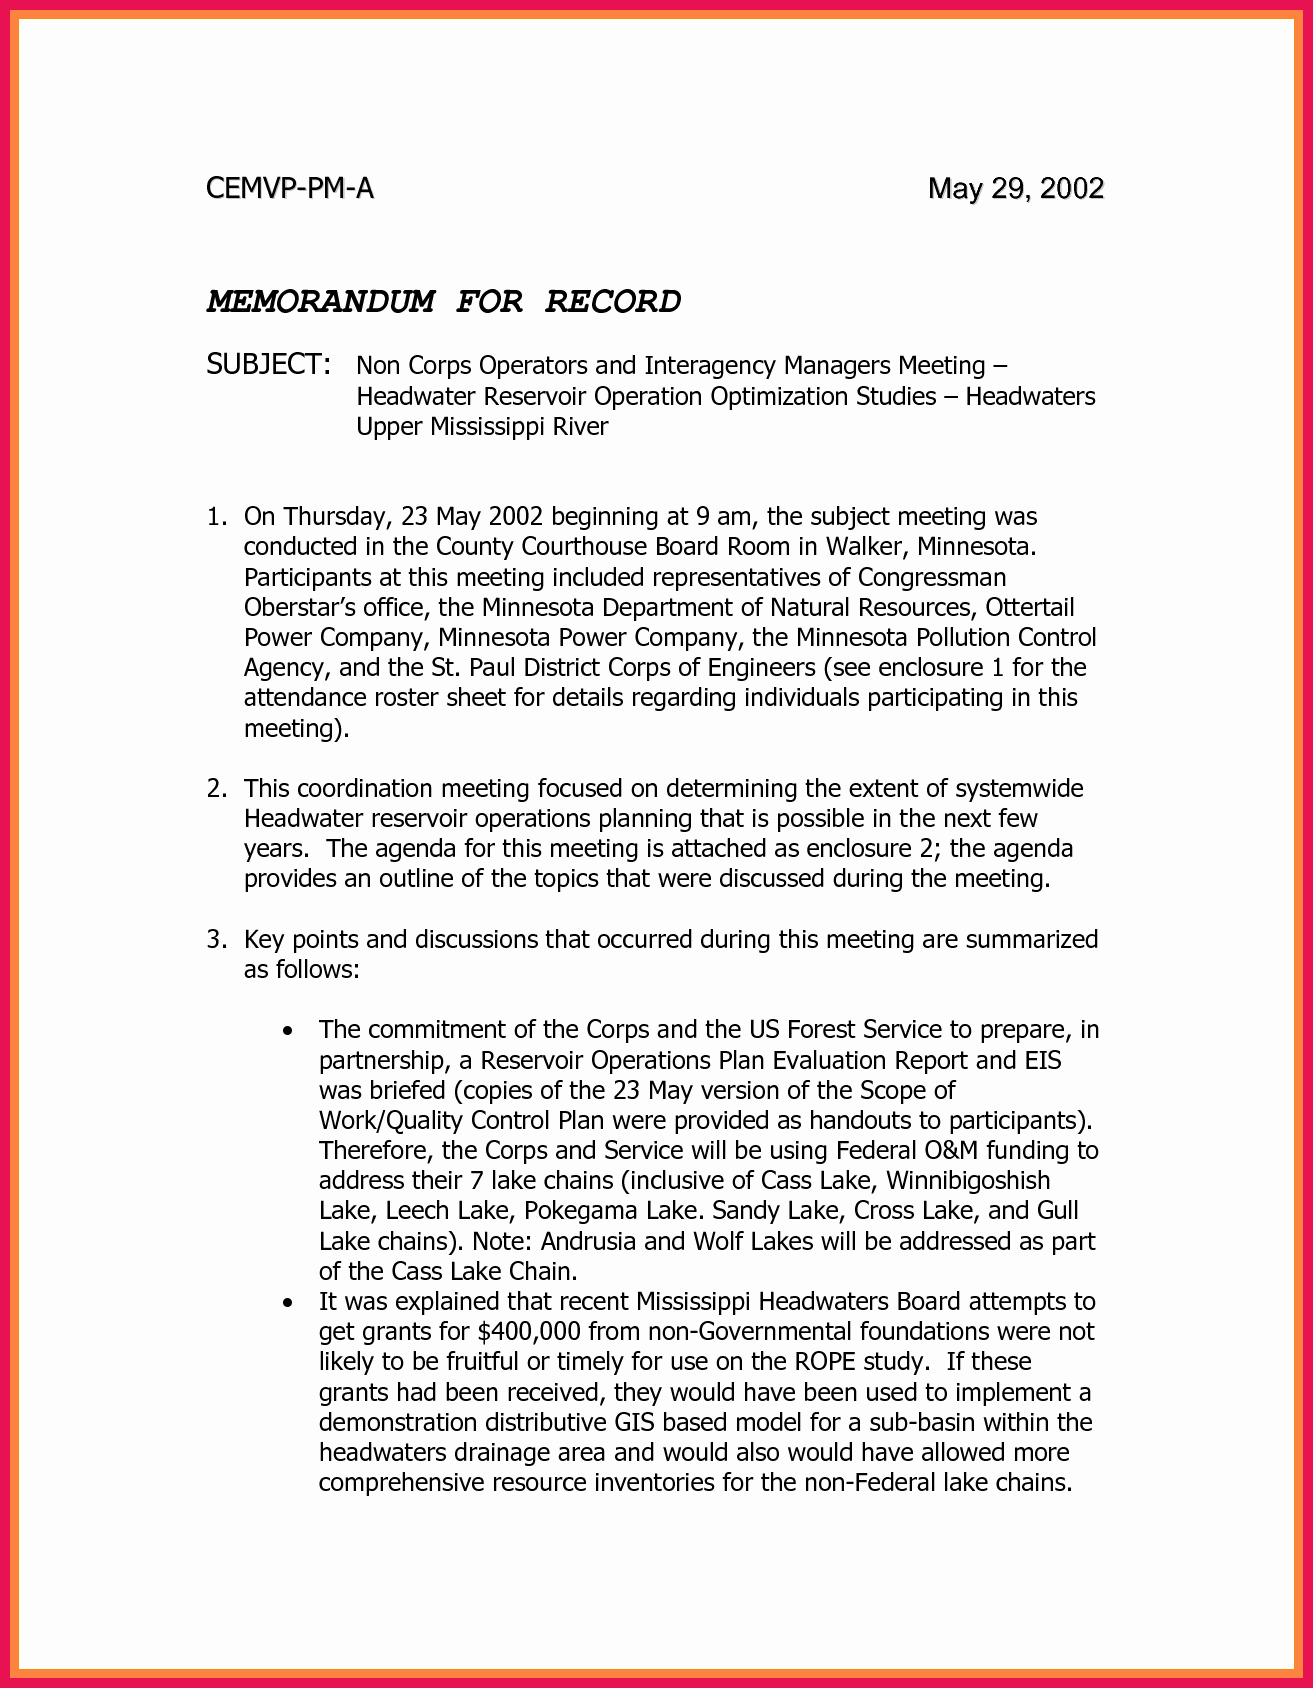 Memo for Record Template Best Of Memorandum for Record Template